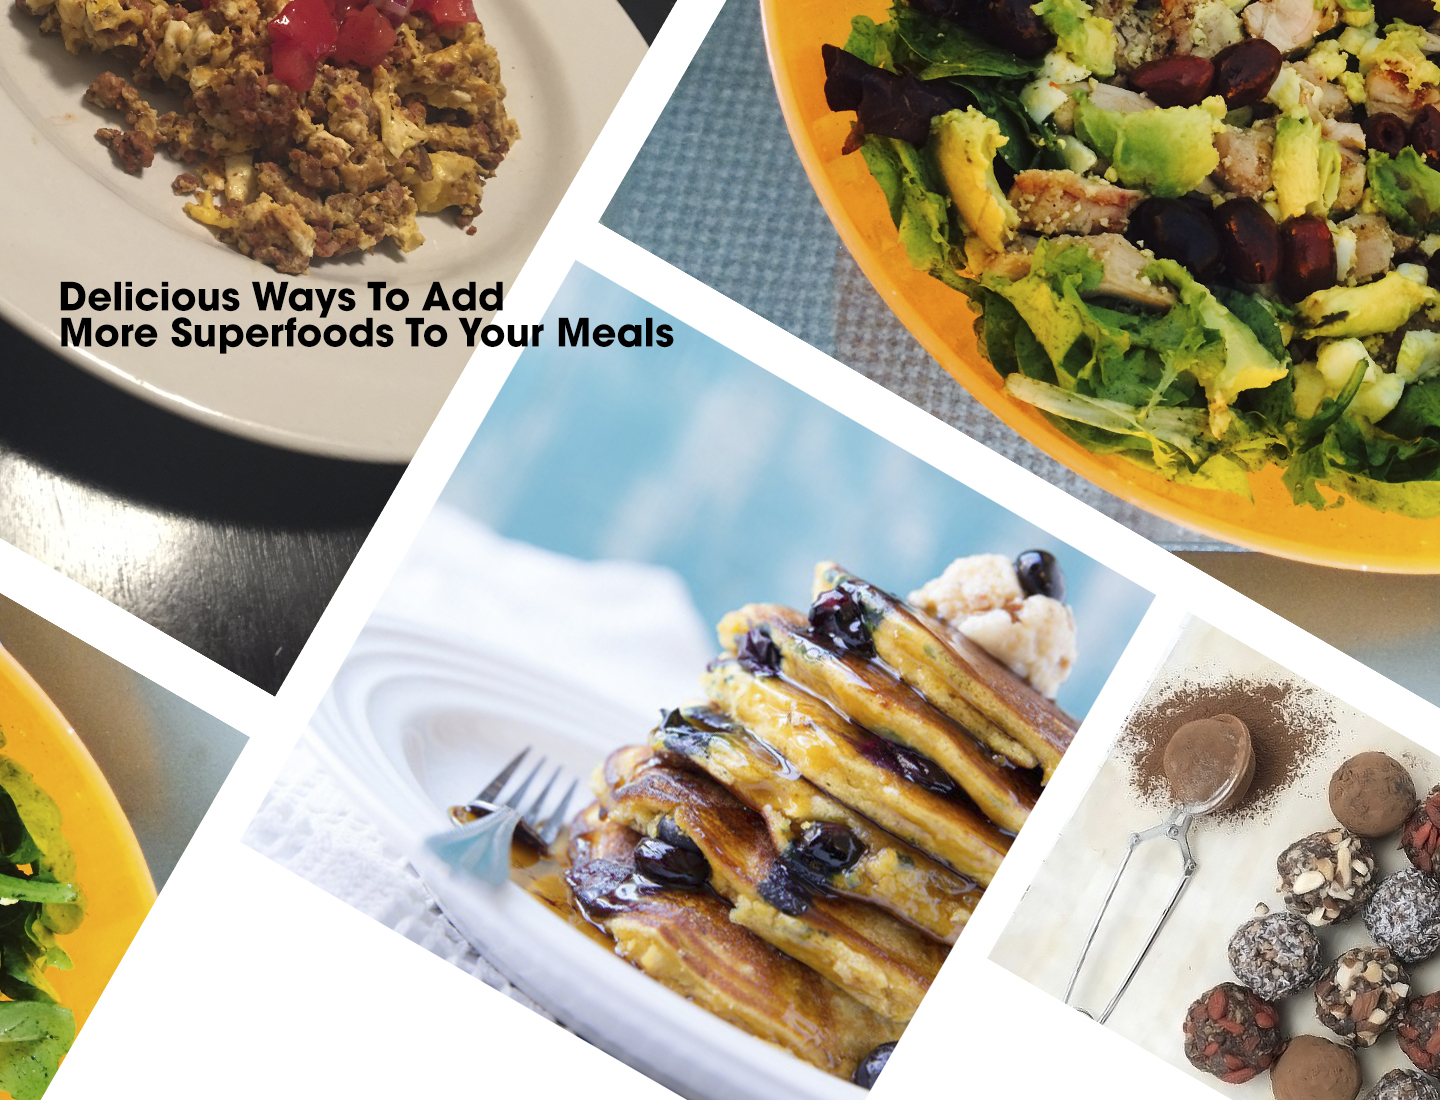 Free recipe book revels simple and delicious ways to use some of the free recipe book revels simple and delicious ways to use some of the world healthiest foods chili breakfast scramble protein pancakes and much more forumfinder Choice Image